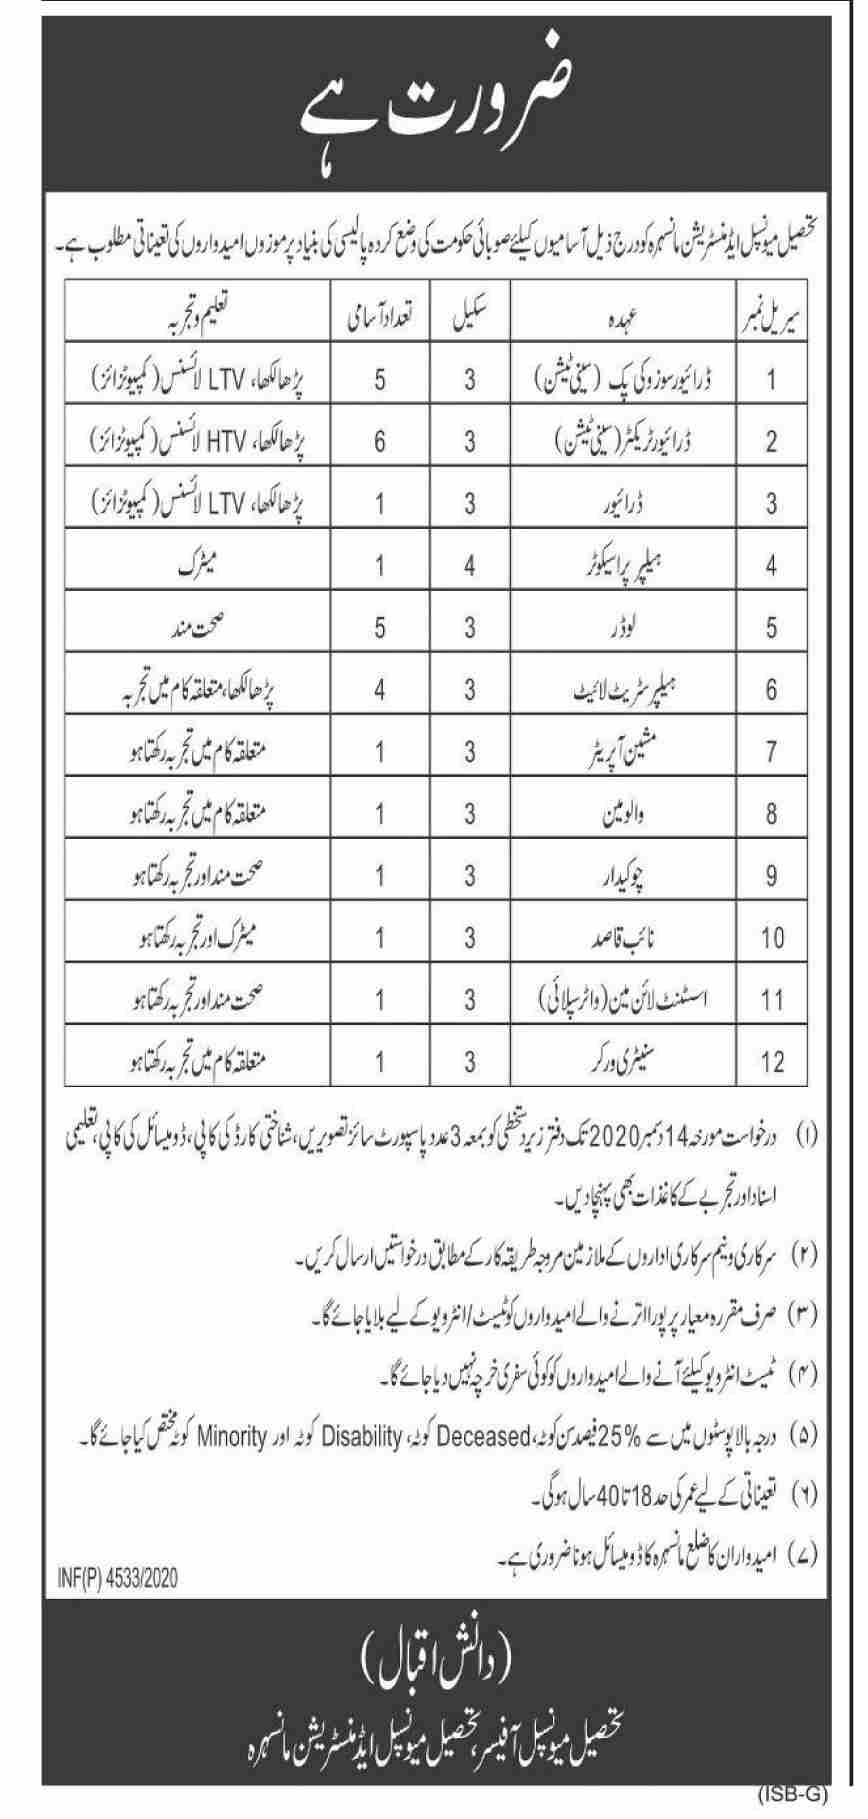 Tehsil Municipal Committee Mansehra Jobs November 2020